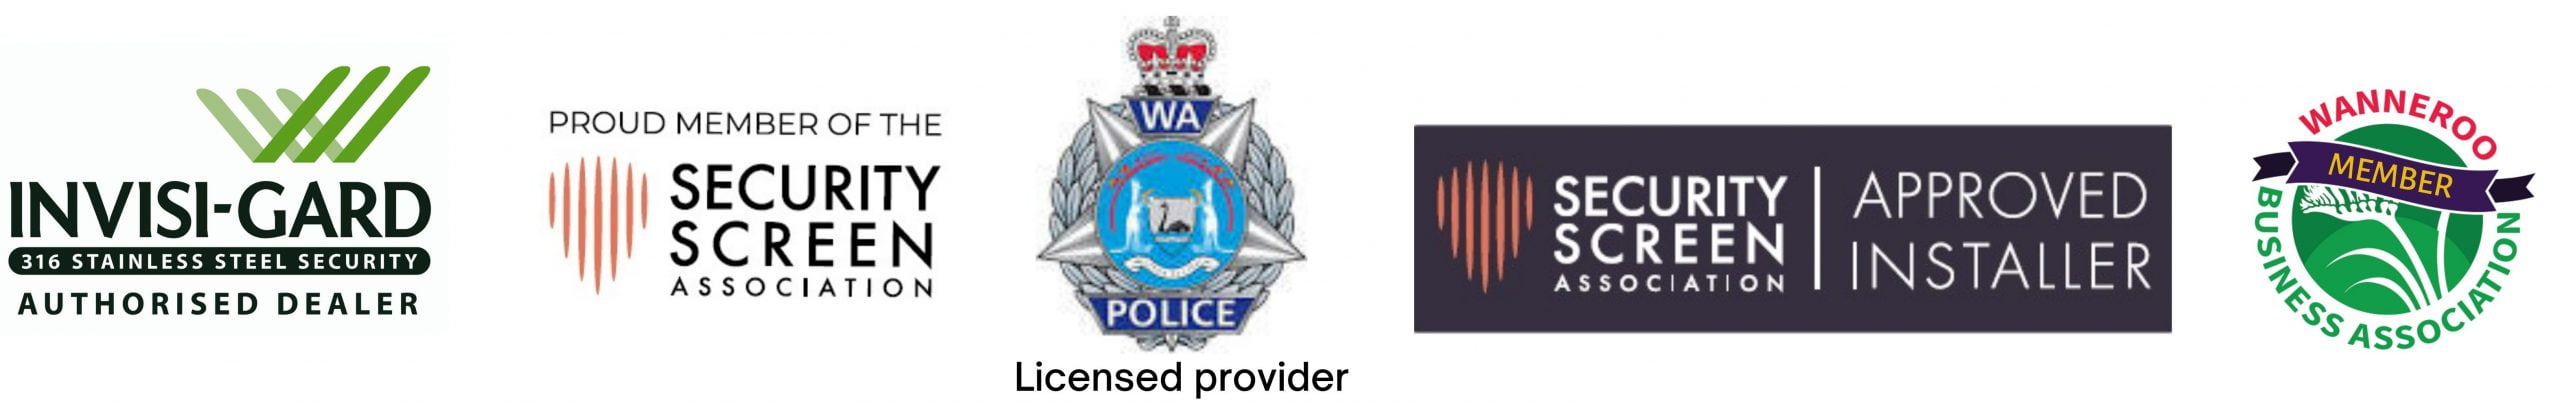 Tower Security endorsements